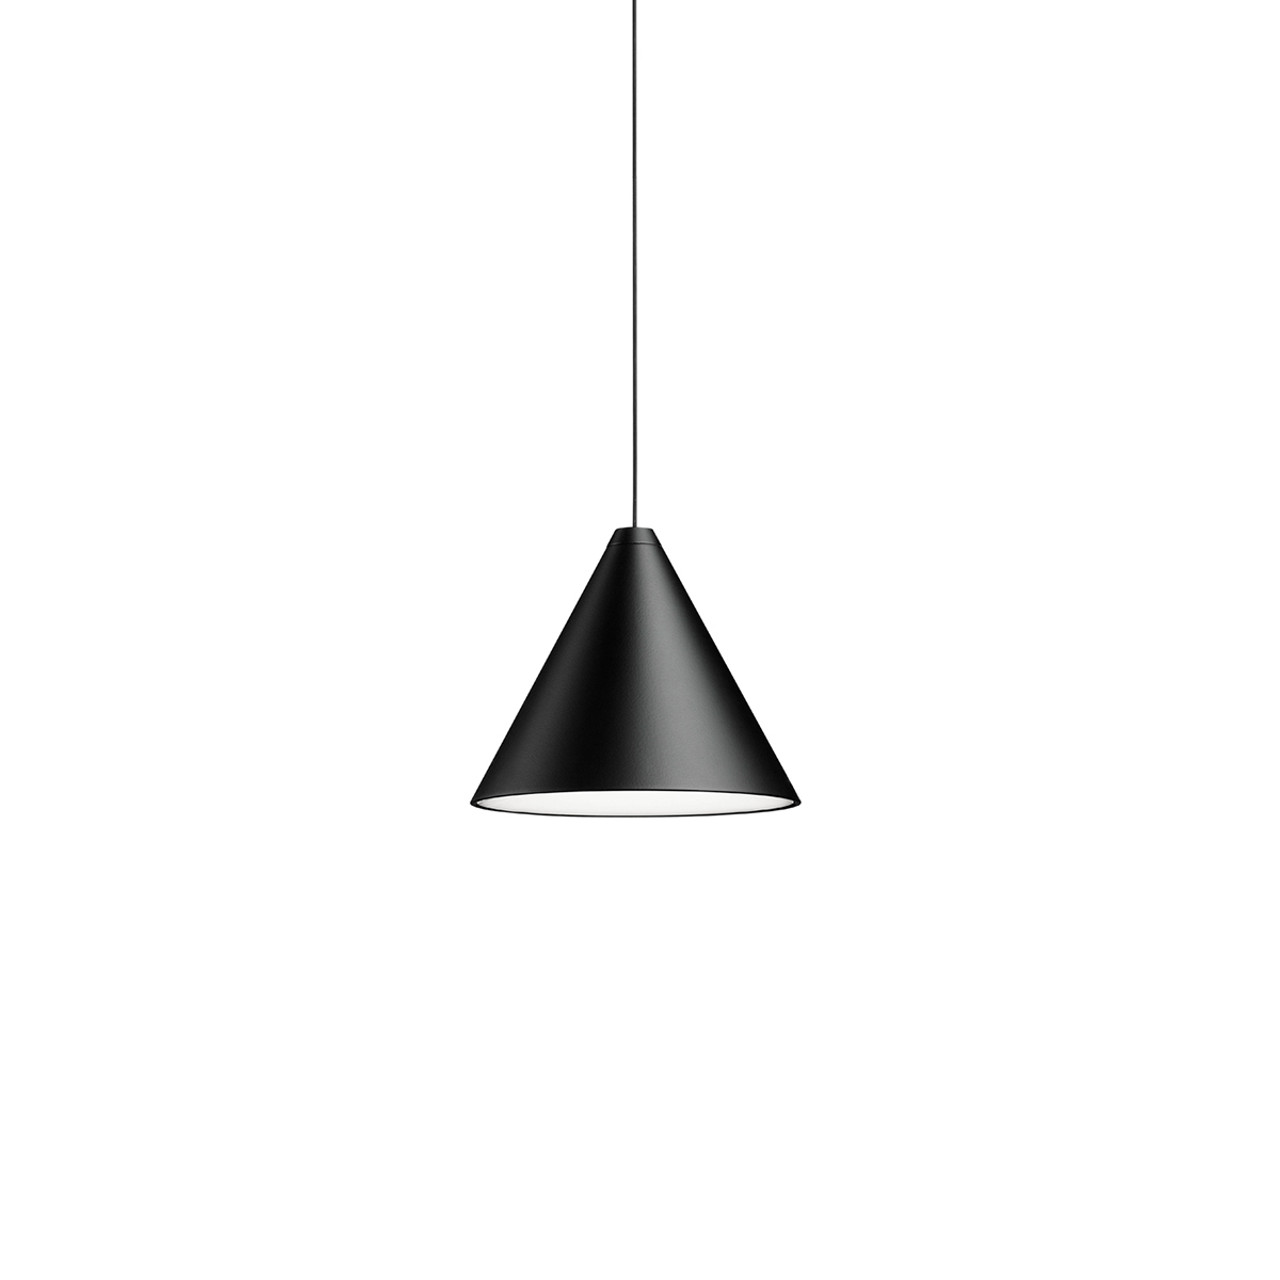 pendant wiring diagram lm 10 wiring diagram update  string lights cone pendant light by michael anastassiades flos usa floor wiring diagram pendant wiring diagram lm 10